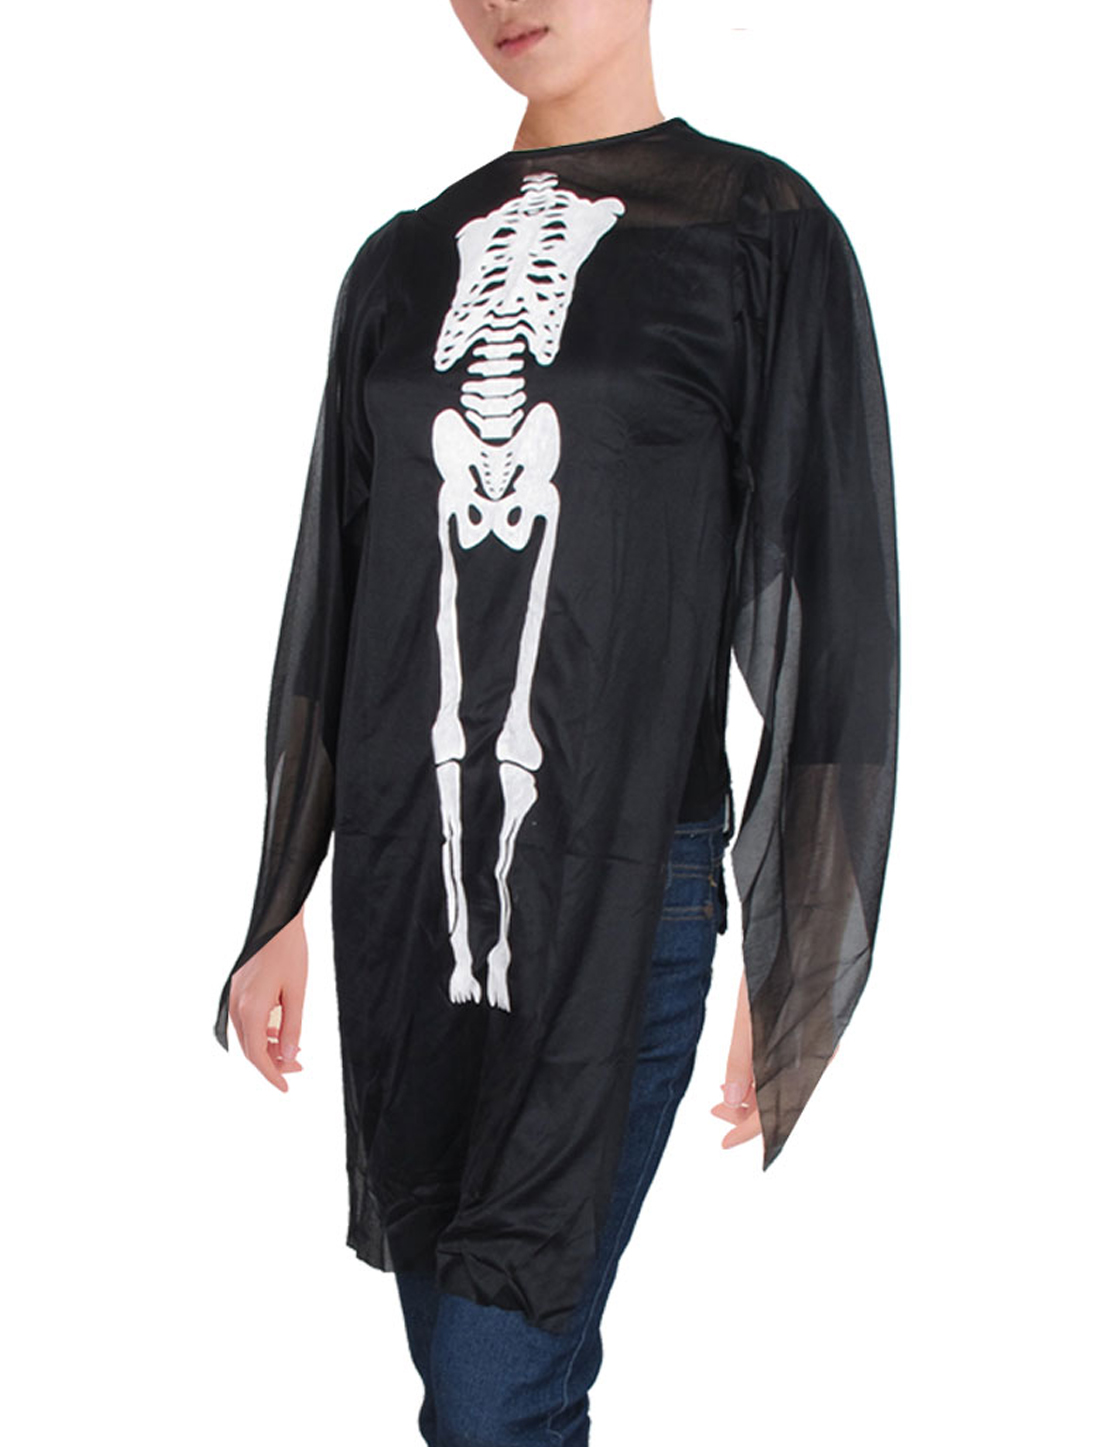 Black Round Neck Skull Skeleton Pattern Semi Sheer Ghost Costume for Ladies XS